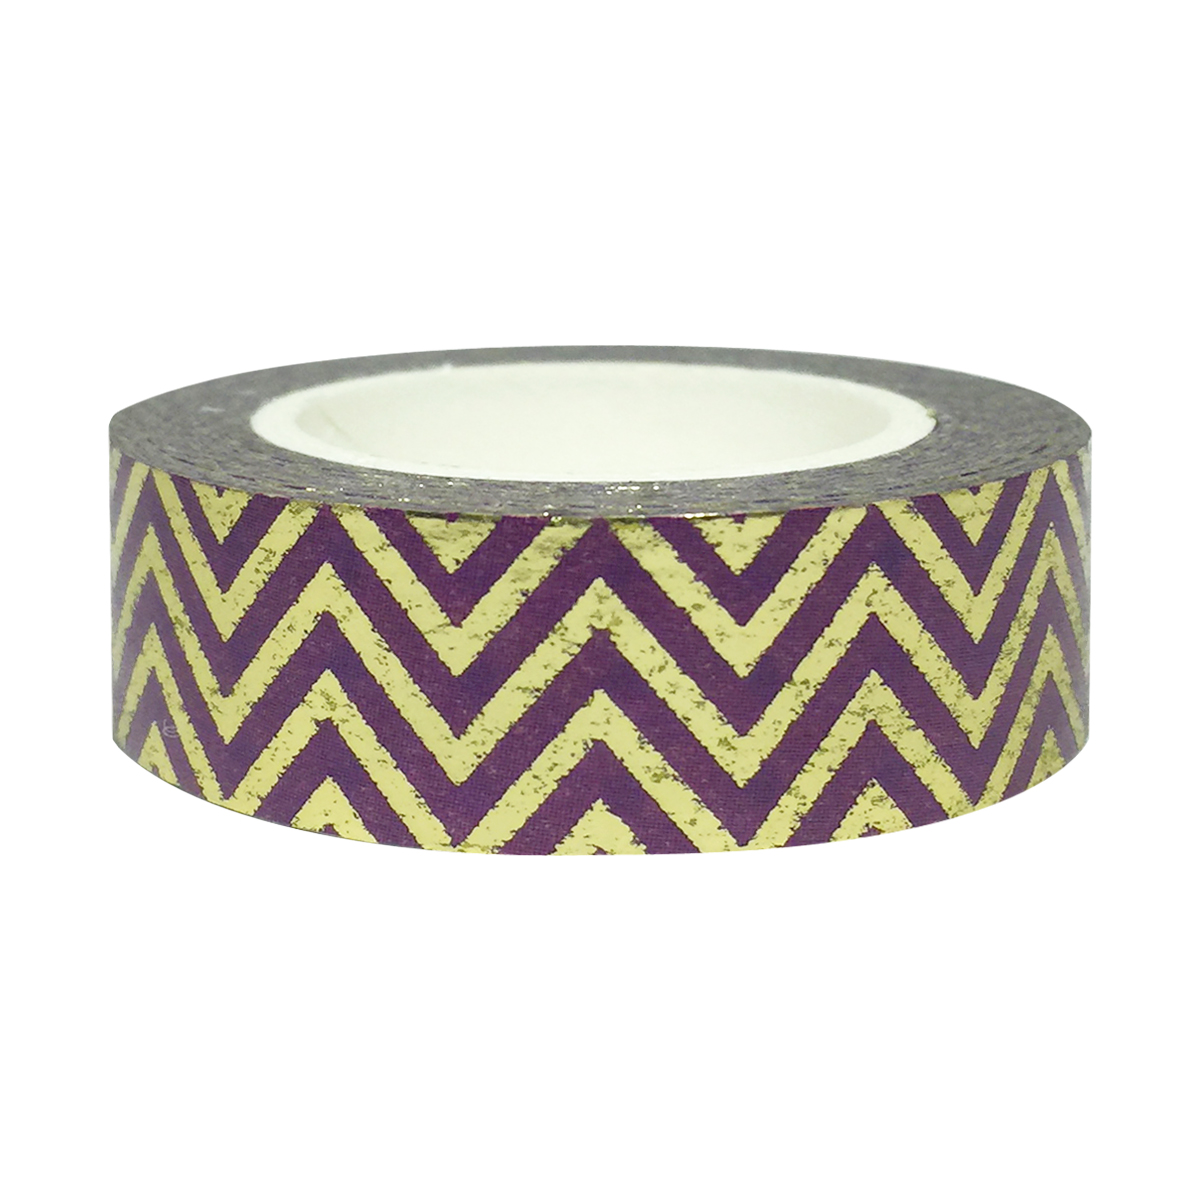 Wrapables® Colorful Washi Masking Tape, Purple and Gold Super Chevron